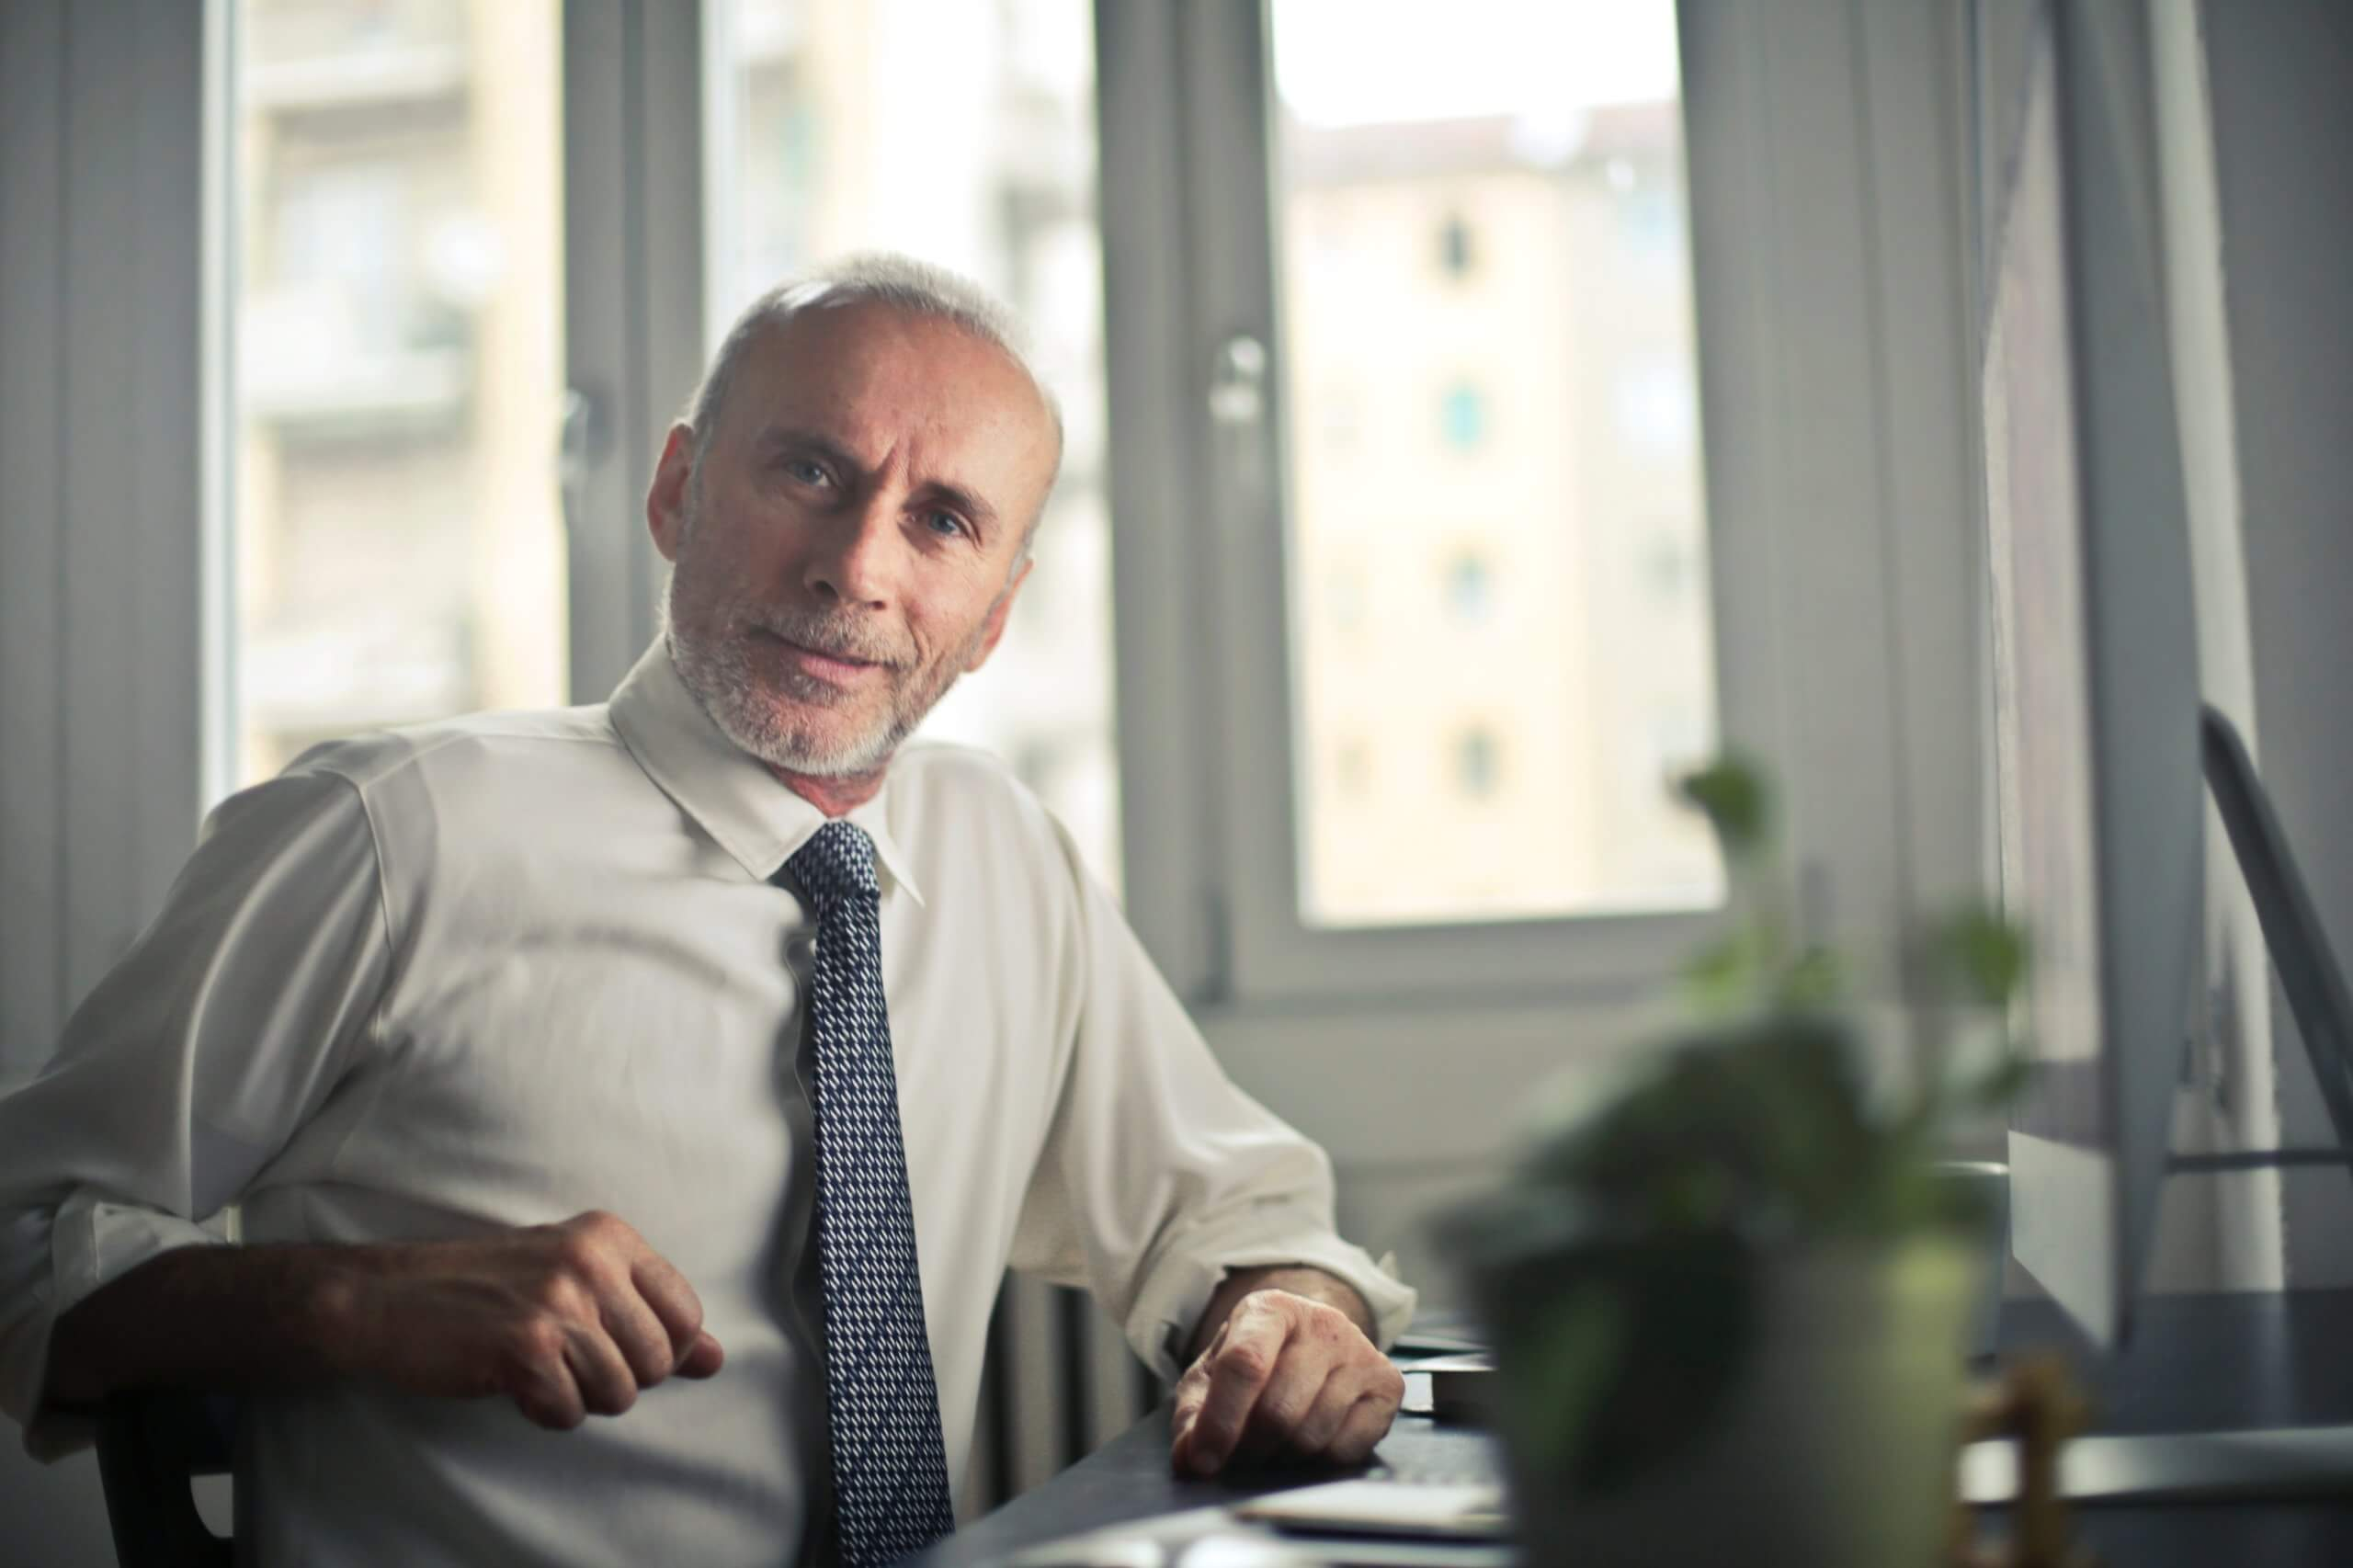 older gentleman in a business shirt and tie sitting at a desk looking at camera